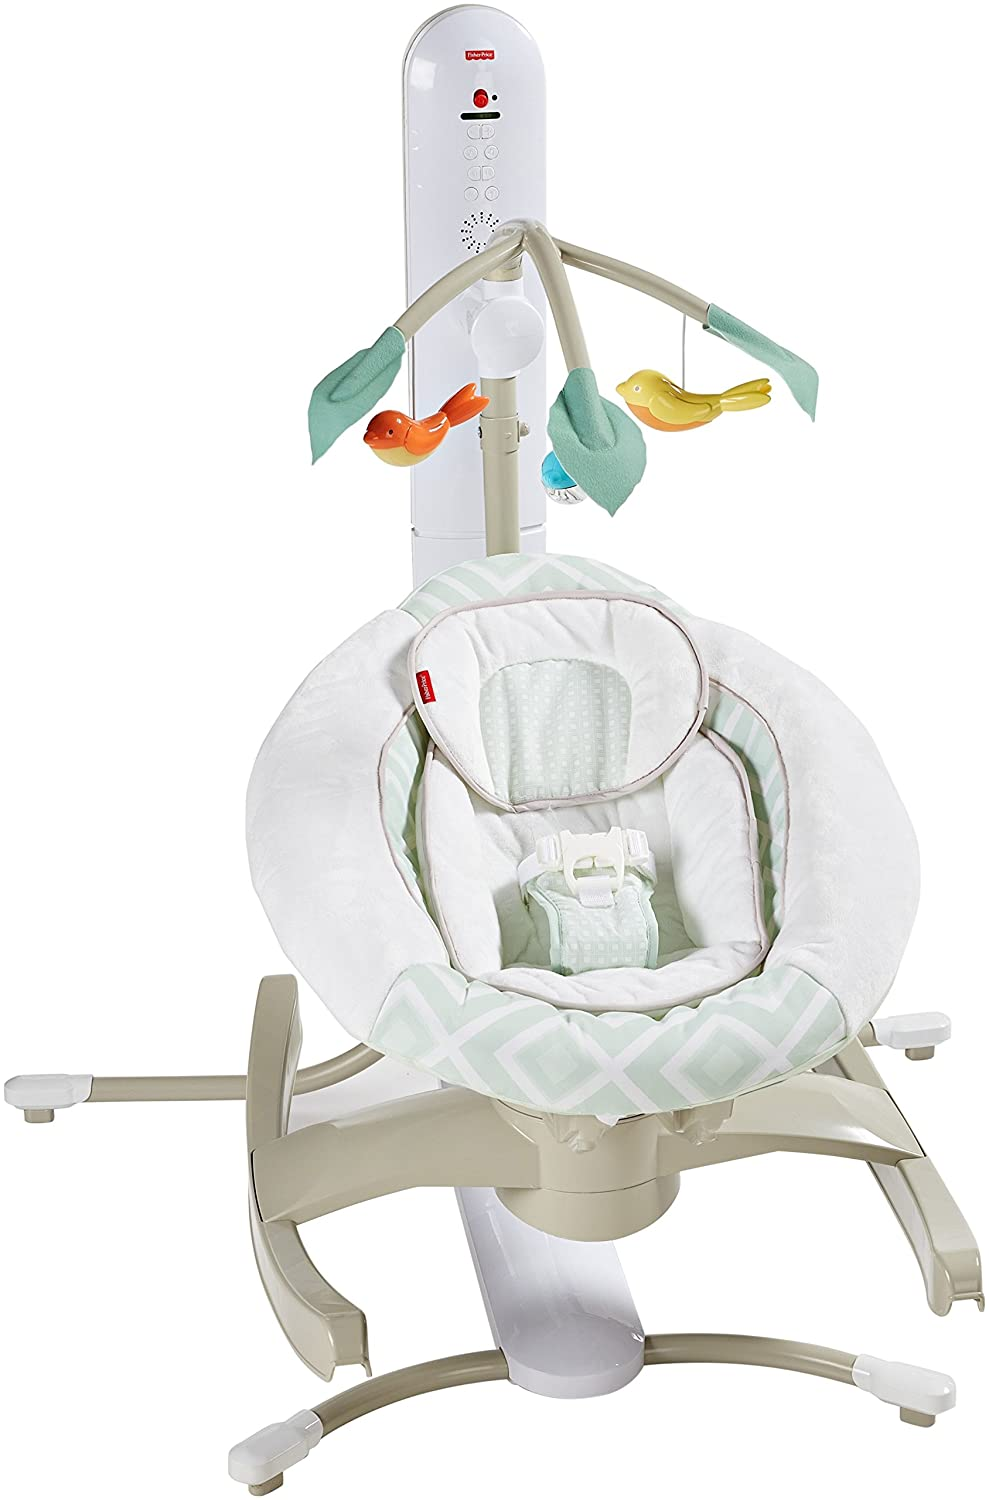 Fisher-Price 4 Motion Cradle 'n Swing with Smart Connect, Serene Green DKD85